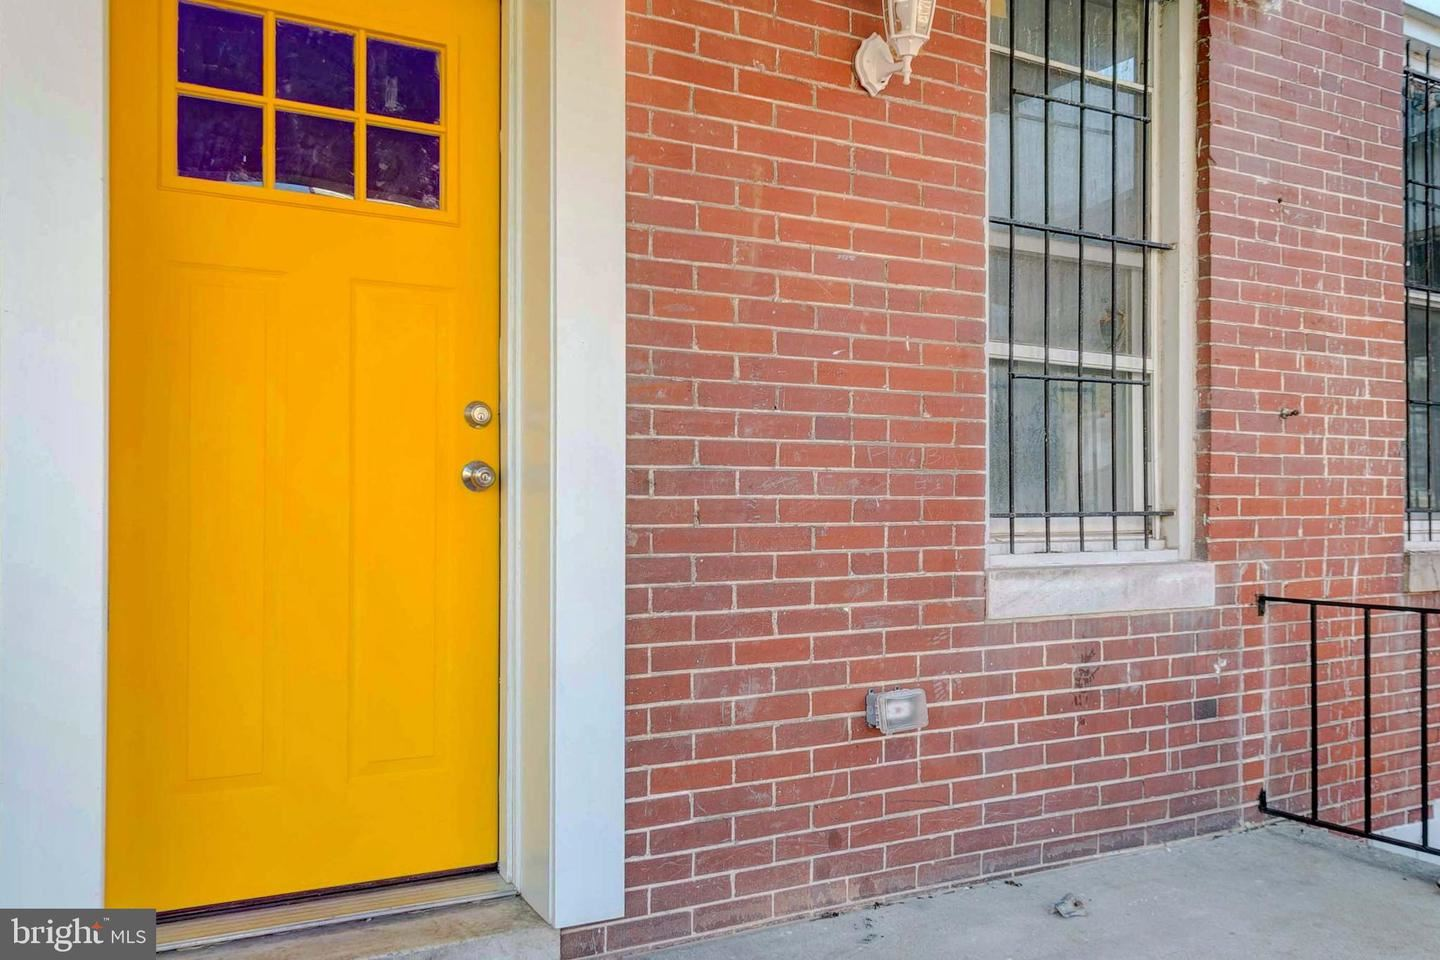 605 LINNARD ST, Baltimore, MD 21229 - MLS#: MDBA543136